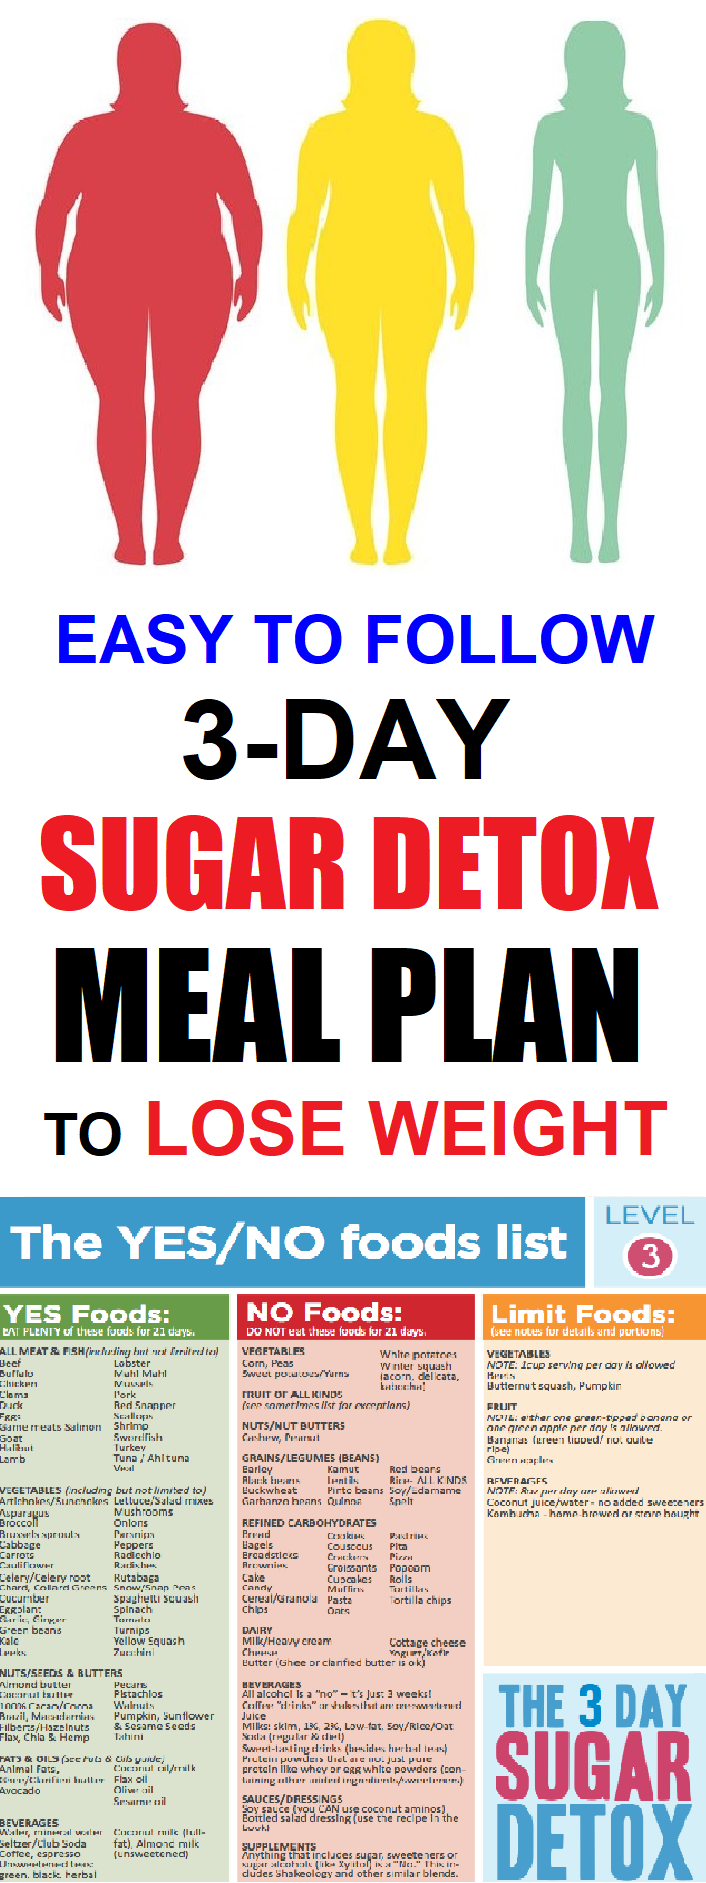 Easy To Follow 3-Day Sugar Detox Meal Plan To Lose Weight #sugardetoxplan sugar detox meal plan #sugardetoxplan Easy To Follow 3-Day Sugar Detox Meal Plan To Lose Weight #sugardetoxplan sugar detox meal plan #sugardetoxplan